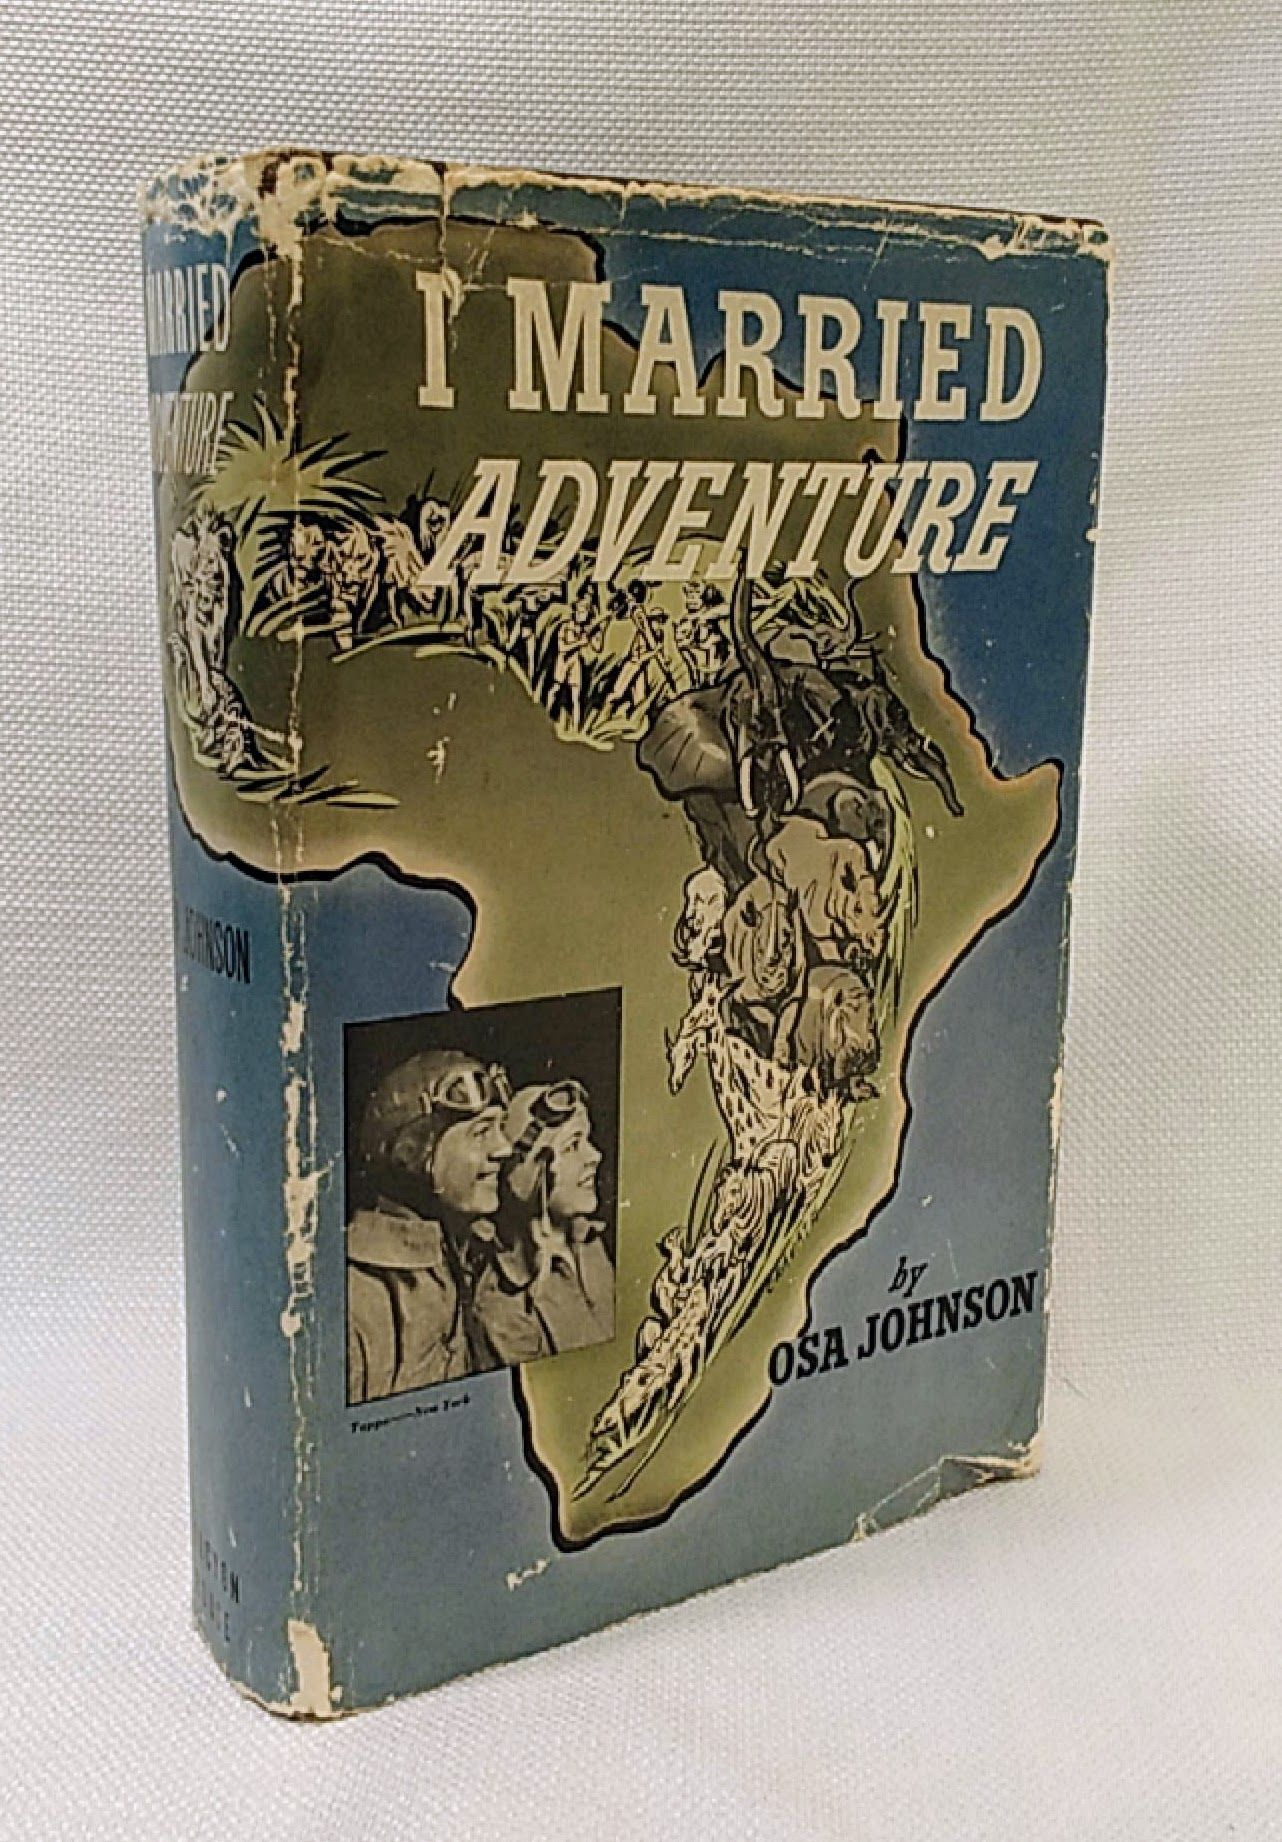 I Married Adventure: The Lives and Adventures of Martin and Osa Johnson, Johnson, Osa